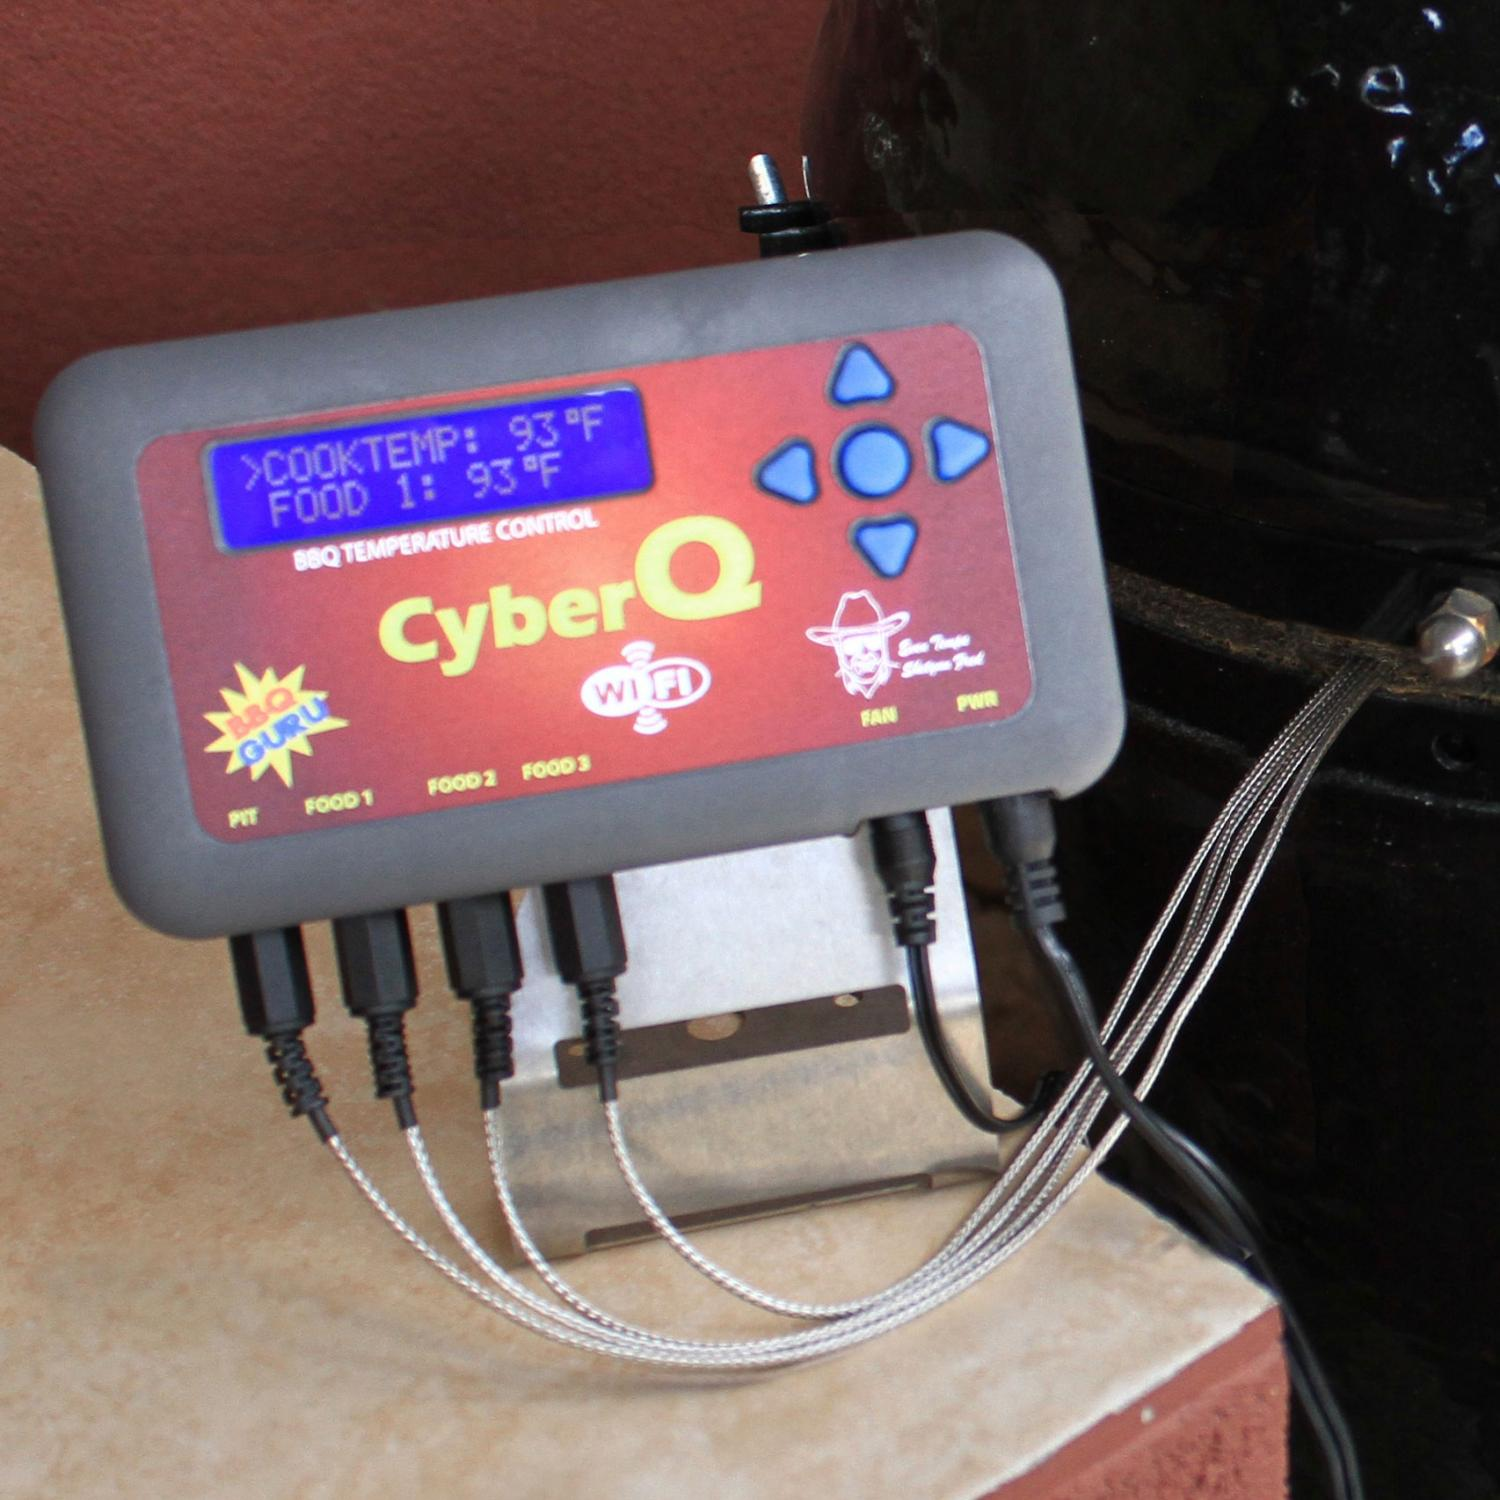 Bbq Guru Cyberq Wifi Digital Controller Kit For Primo Oval Jr.